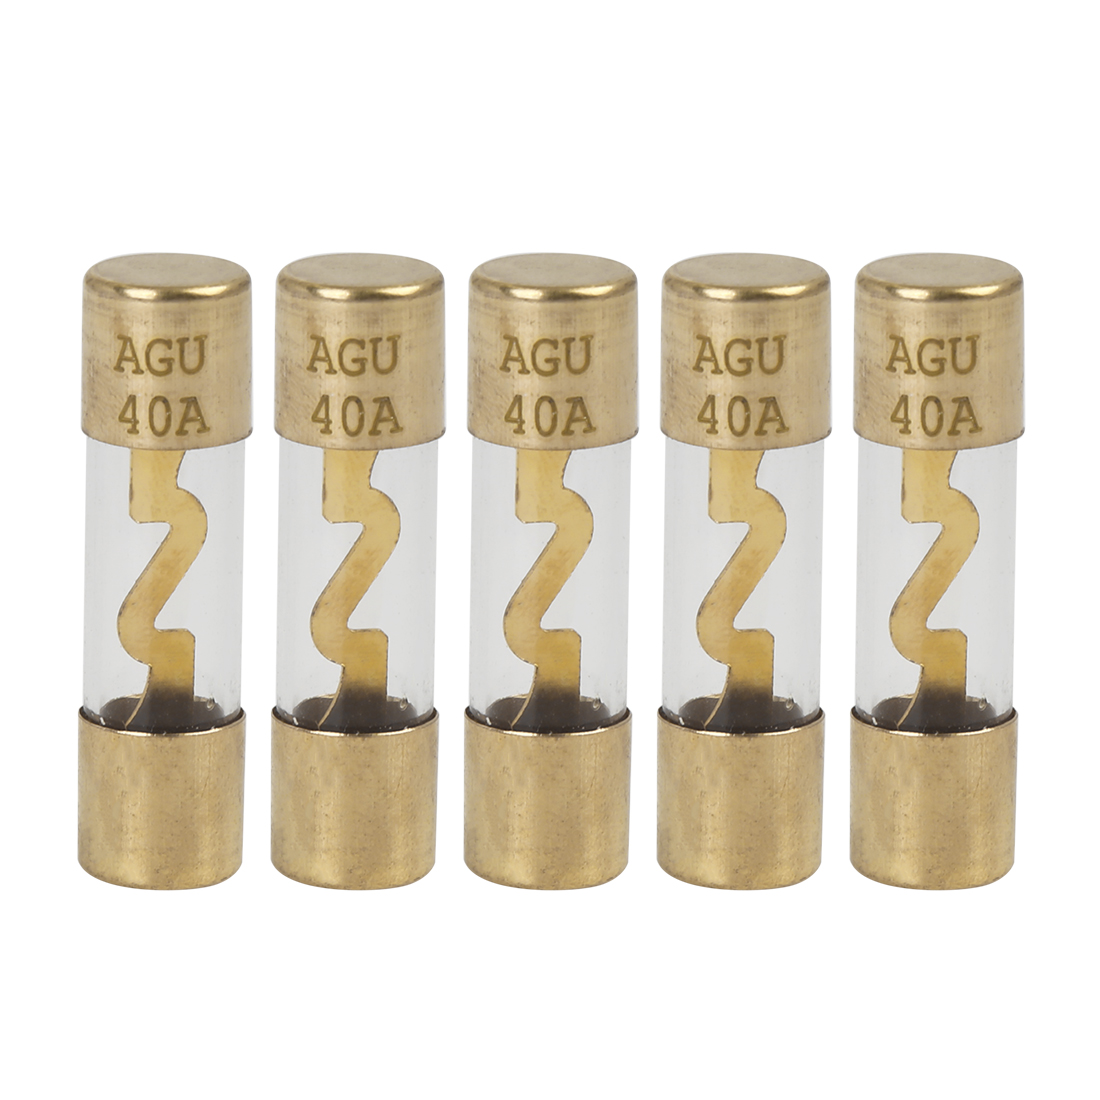 5pcs 40 Amp AGU Fuse Gold Tone Plated for Car Audio Video Stereo